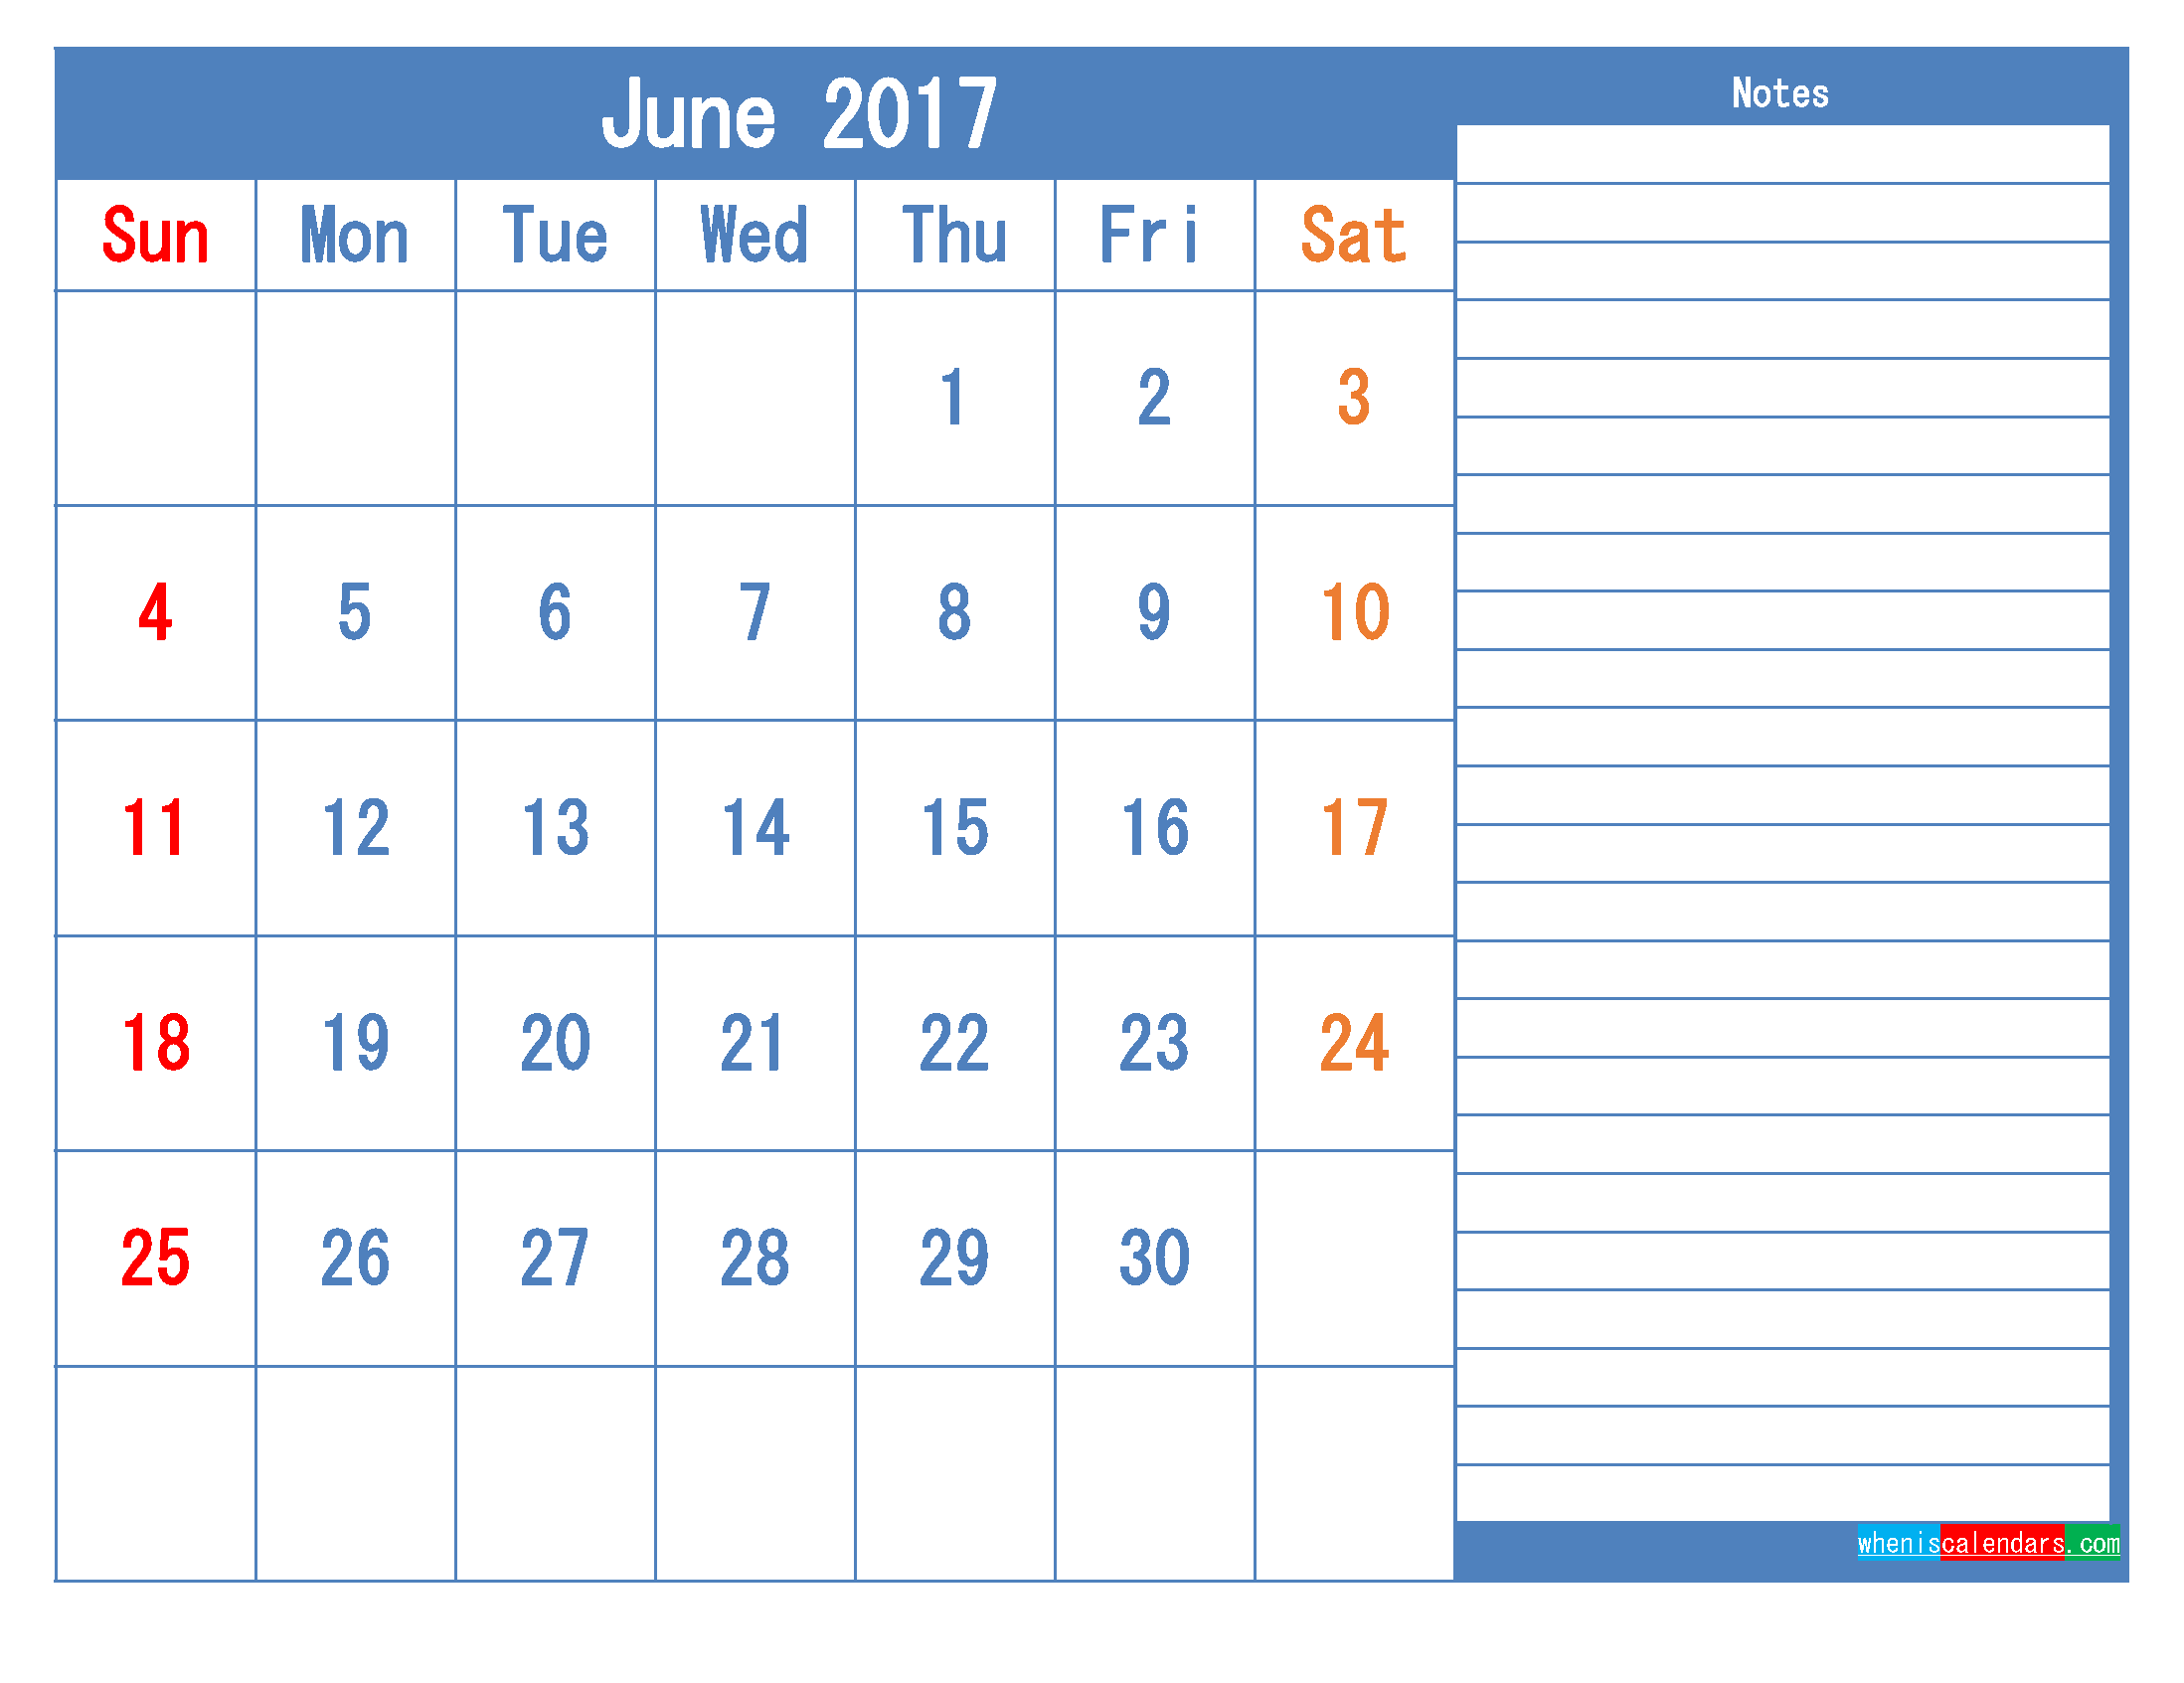 Printable Calendar 2017 June Monthly Calendar Template as PDF